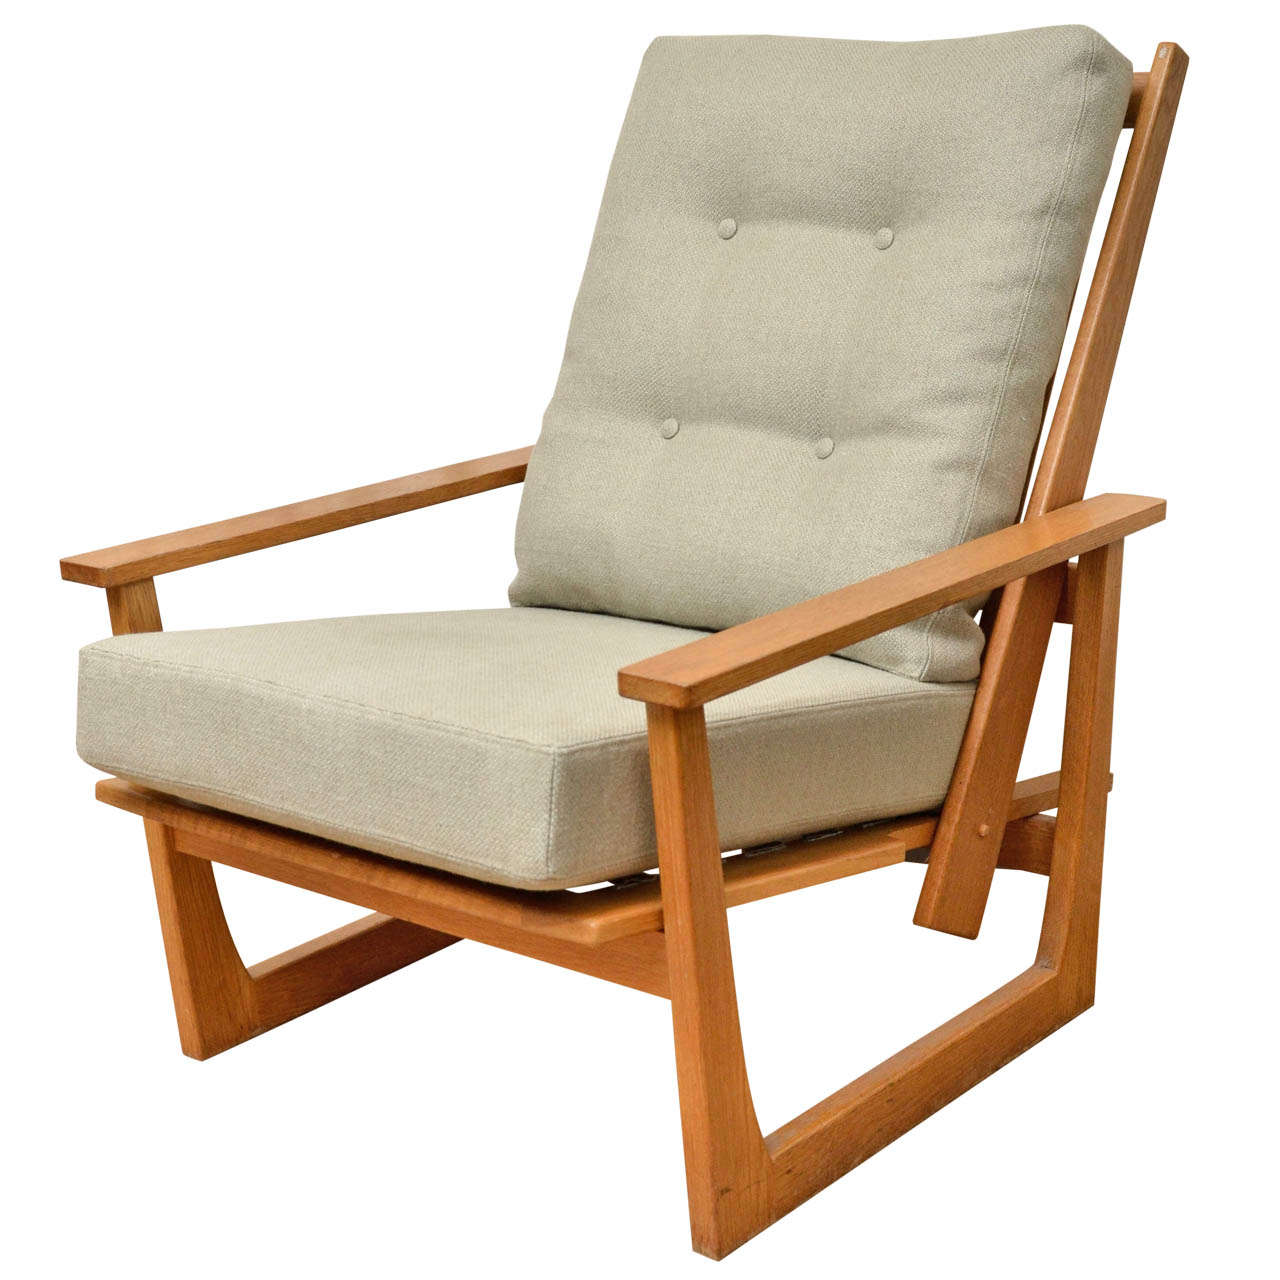 Reclining wooden lounge chair at stdibs